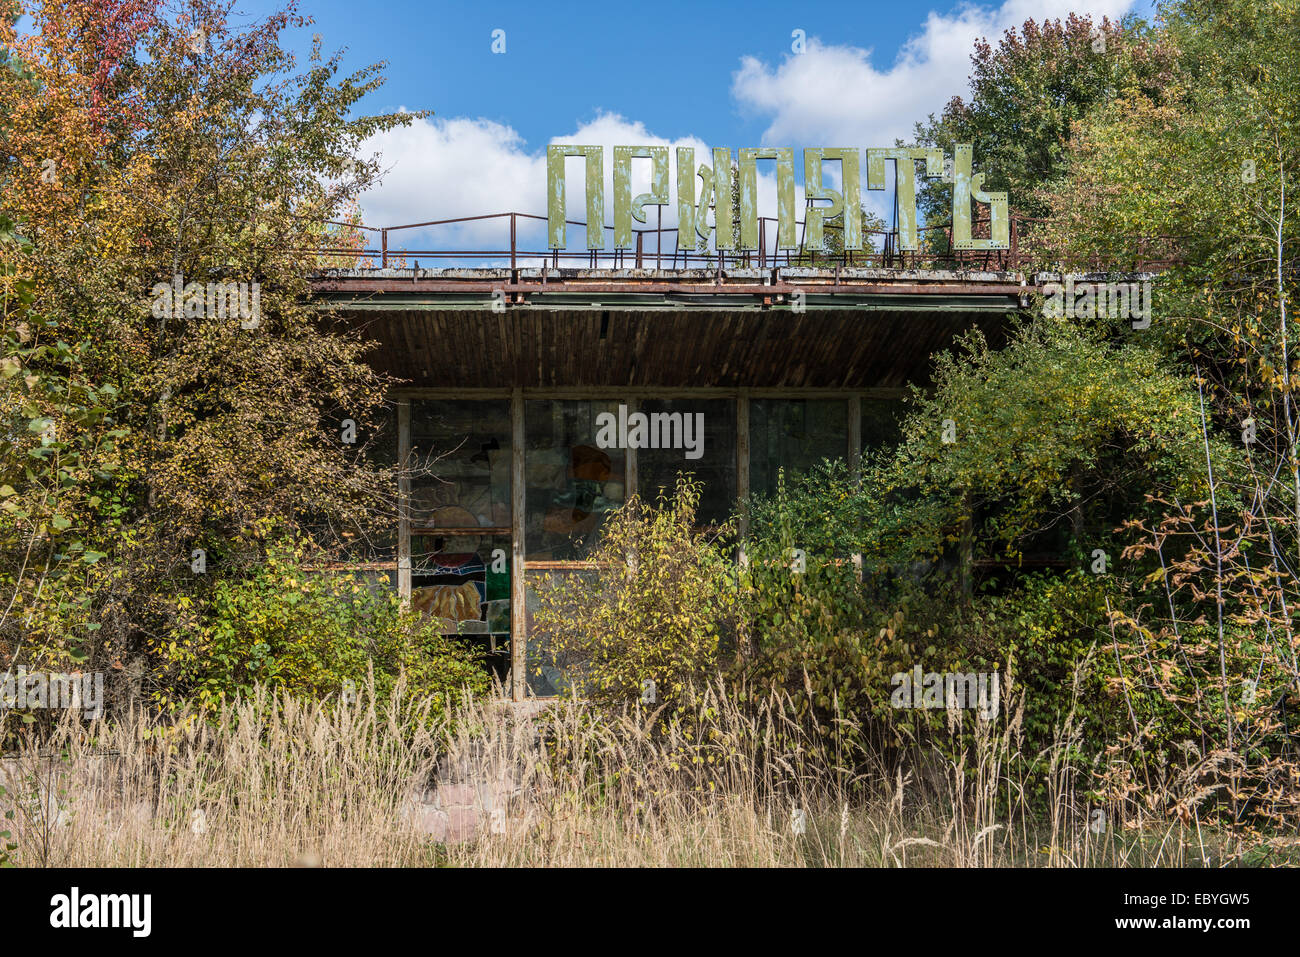 Drone RUIN - Page 12 Famous-cafe-pripyat-in-pripyat-abandoned-city-chernobyl-exclusion-EBYGW5